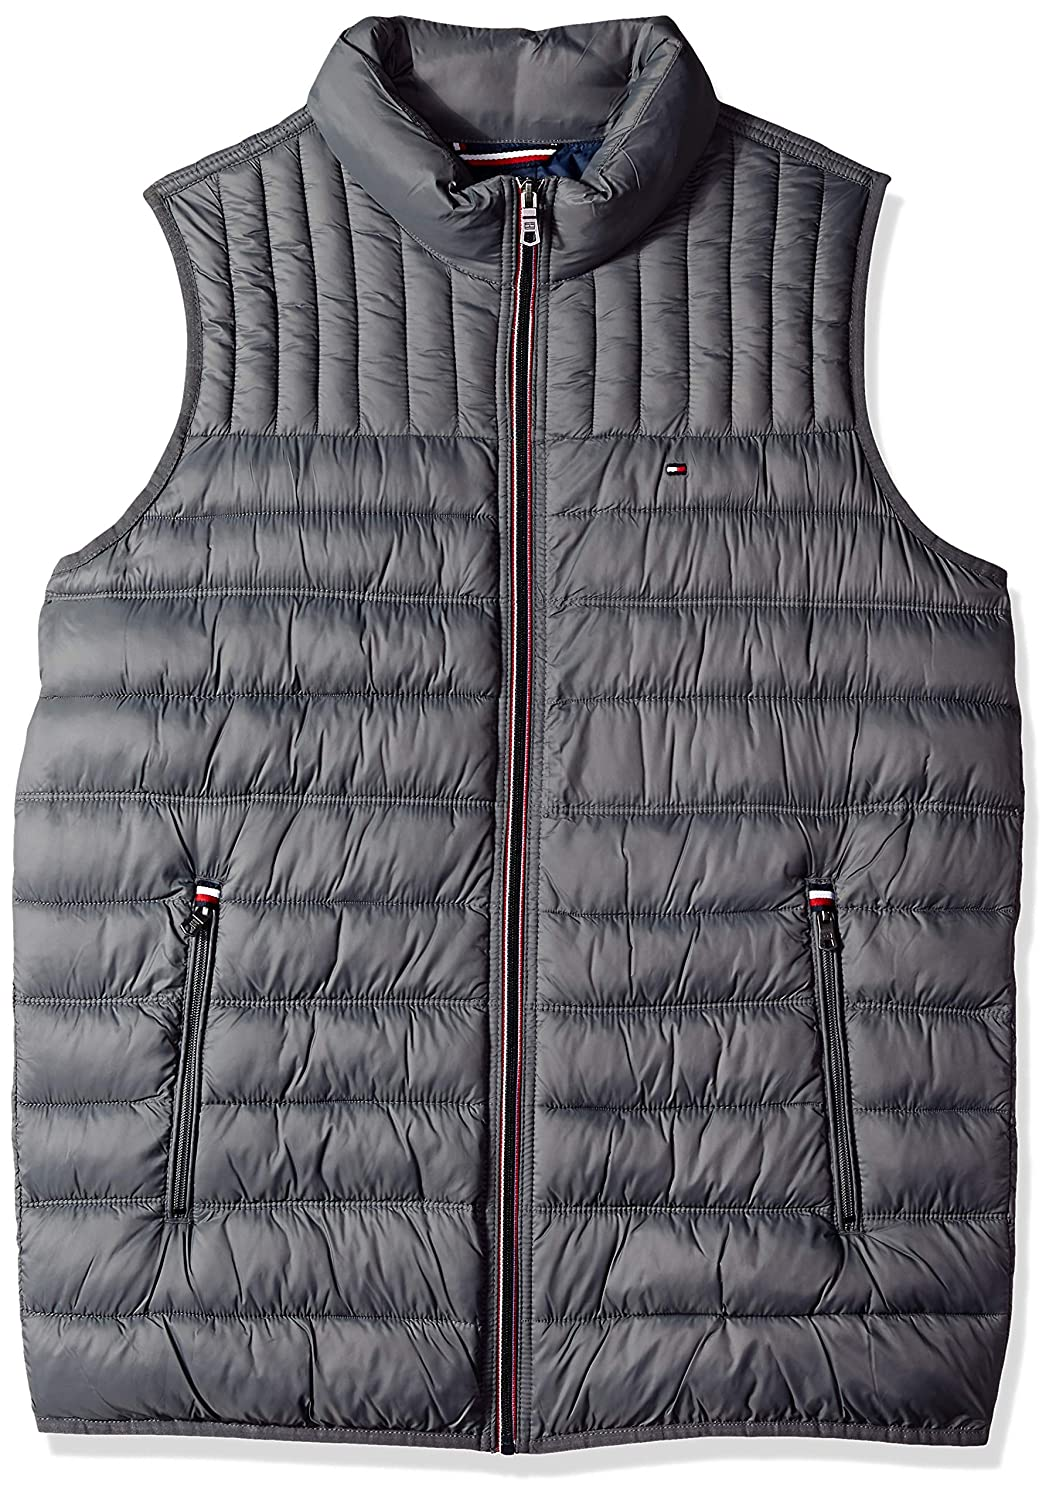 Tommy Hilfiger Men's Big and Tall Lightweight Down Quilted Puffer Vest